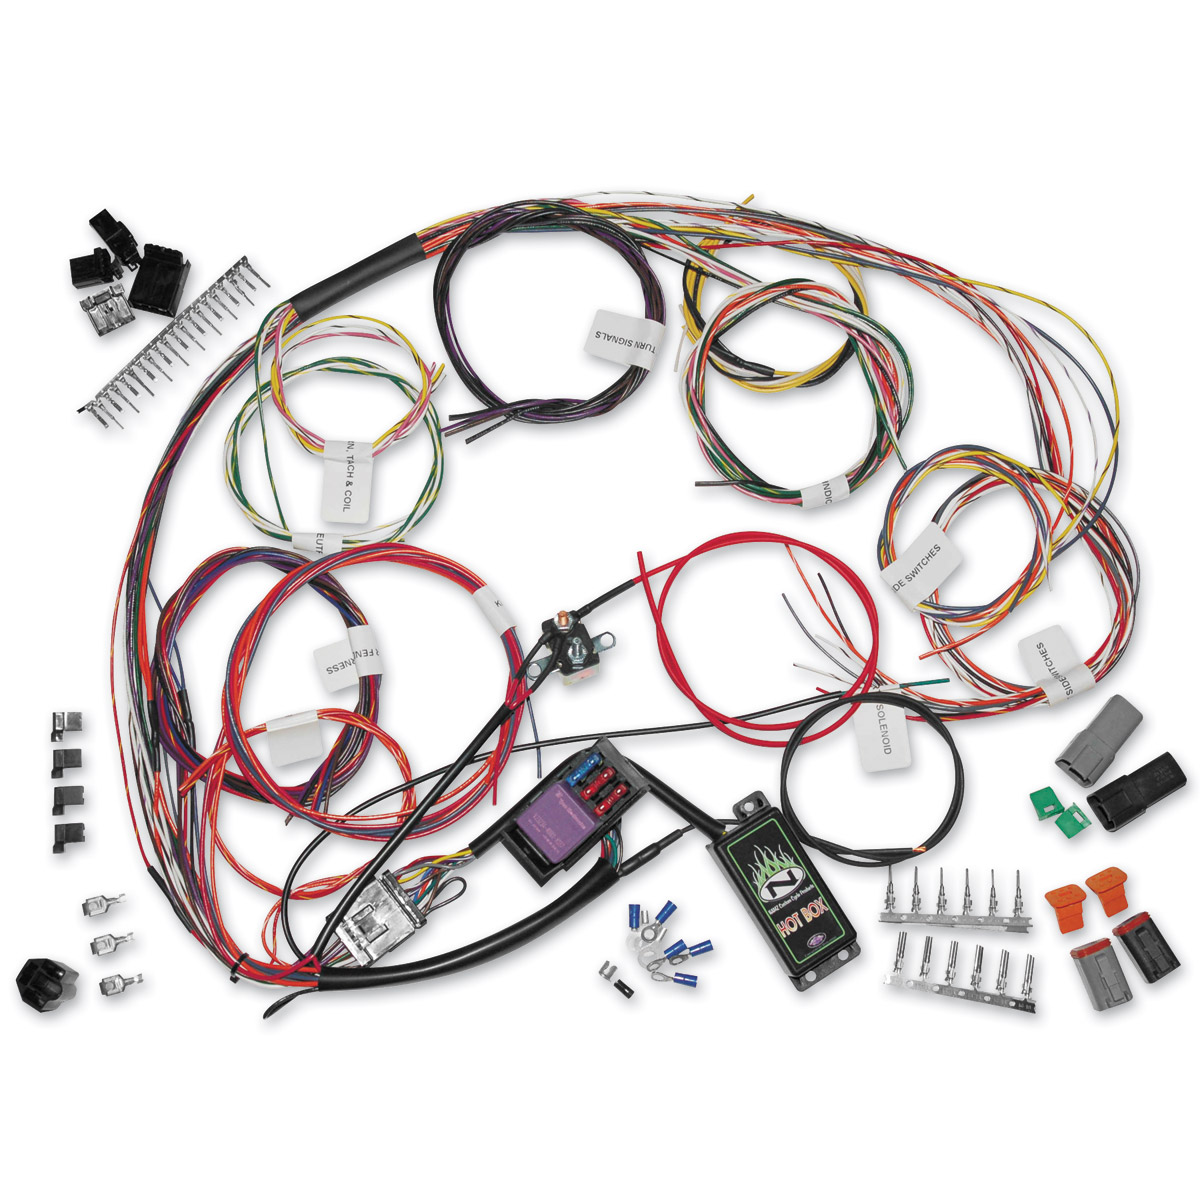 745 072_A harley davidson sportster wiring harness kits j&p cycles 2002 harley softail wiring diagram at readyjetset.co